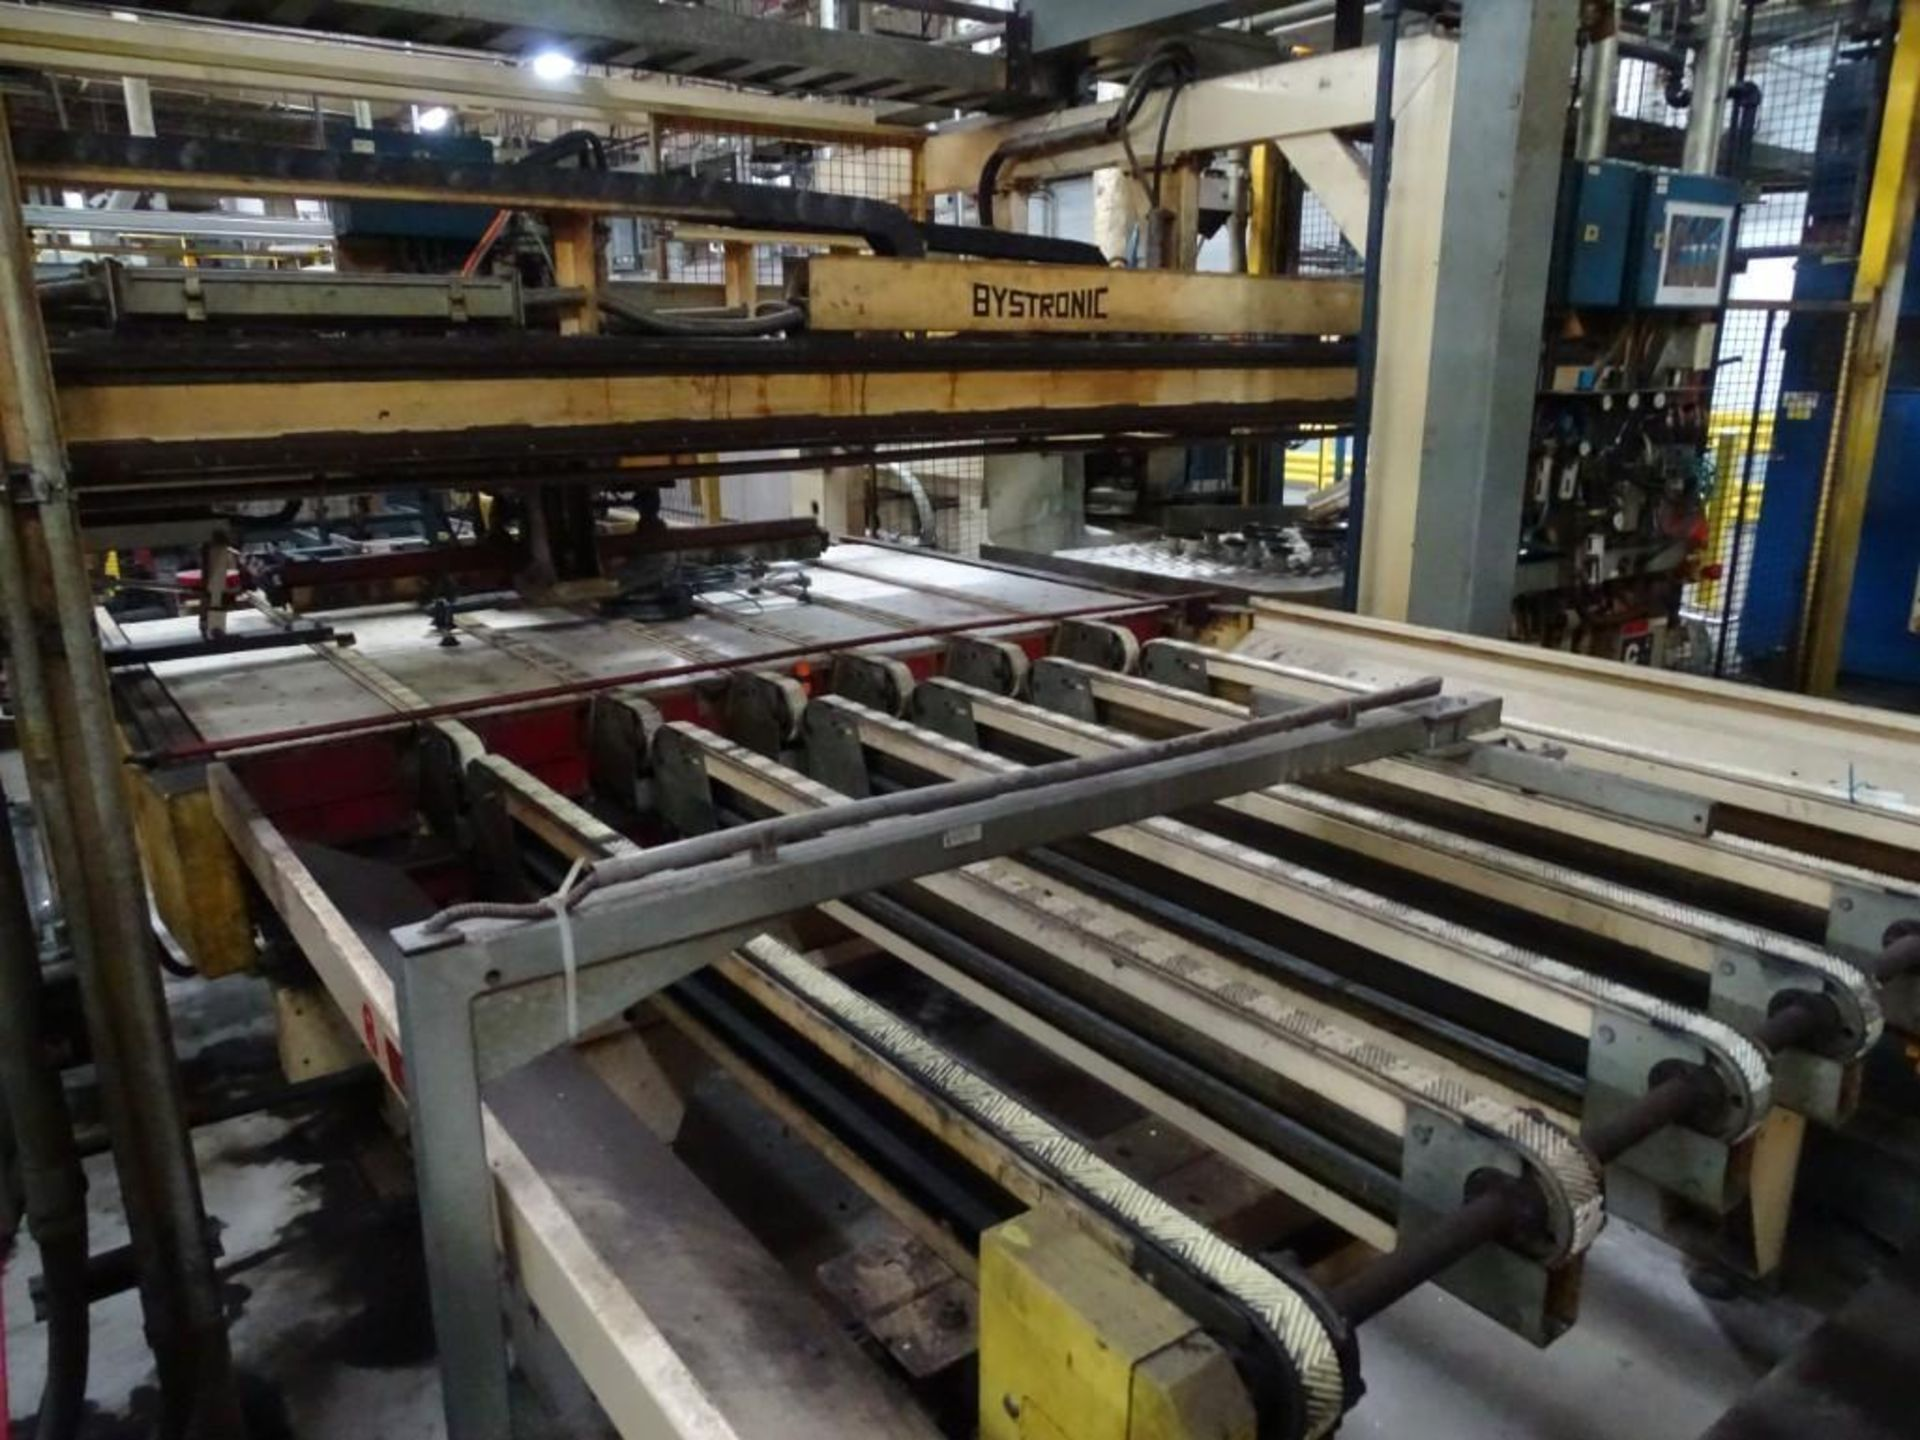 Bystronic Glass Edge Grinder with Conveyor Sections - Image 10 of 20